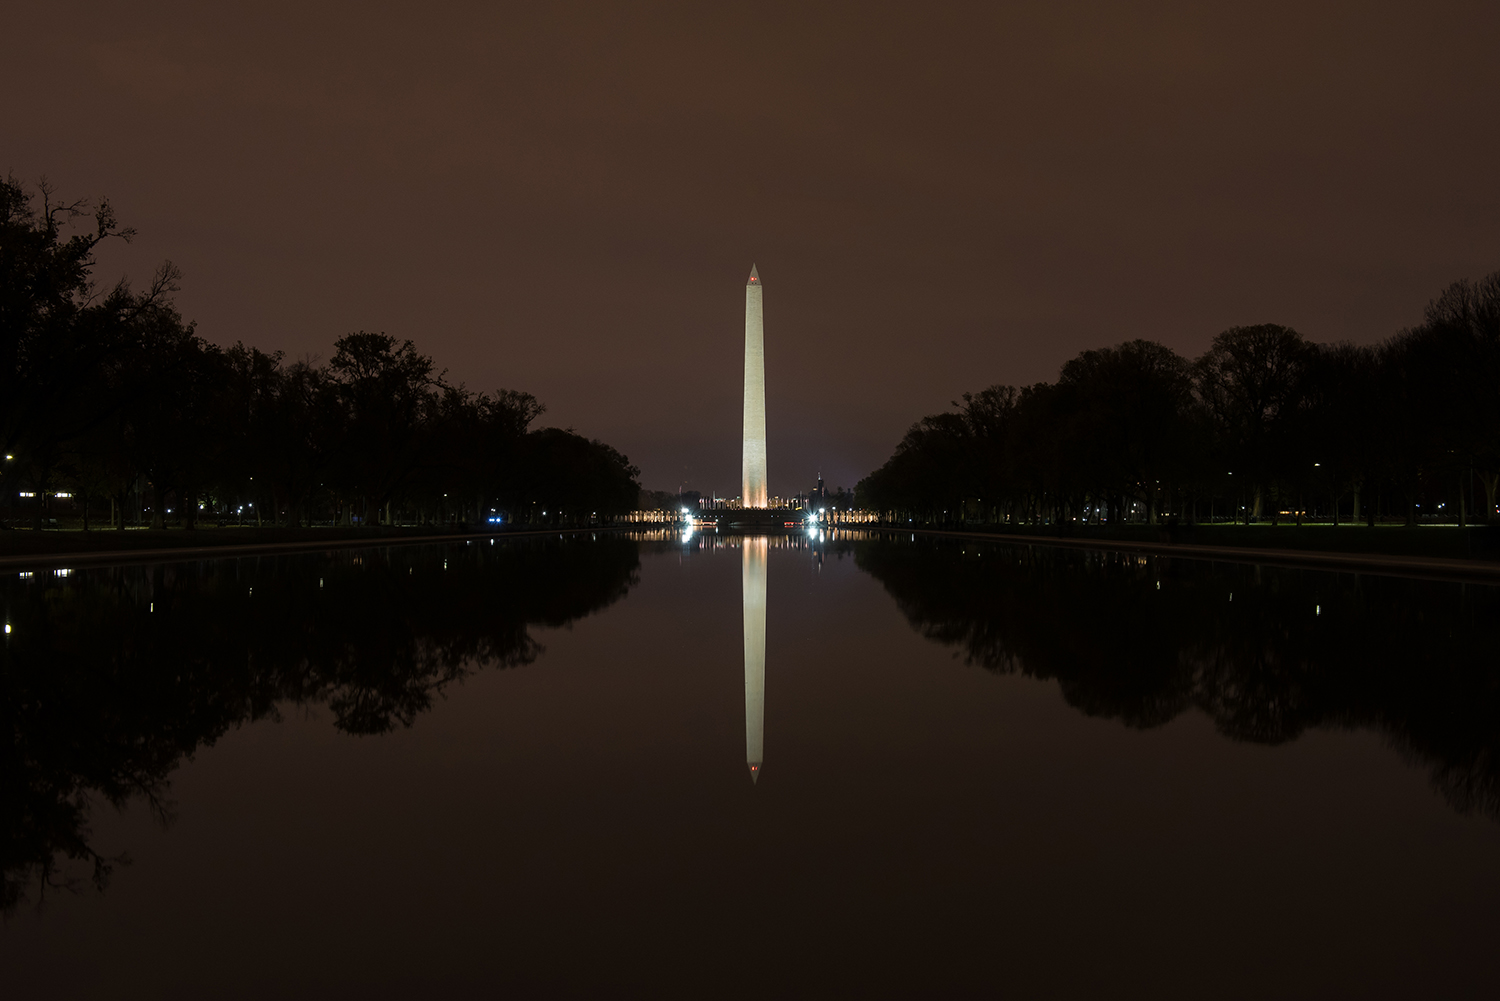 The Washington Monument as seen from the Lincoln Memorial on a perfectly still night.